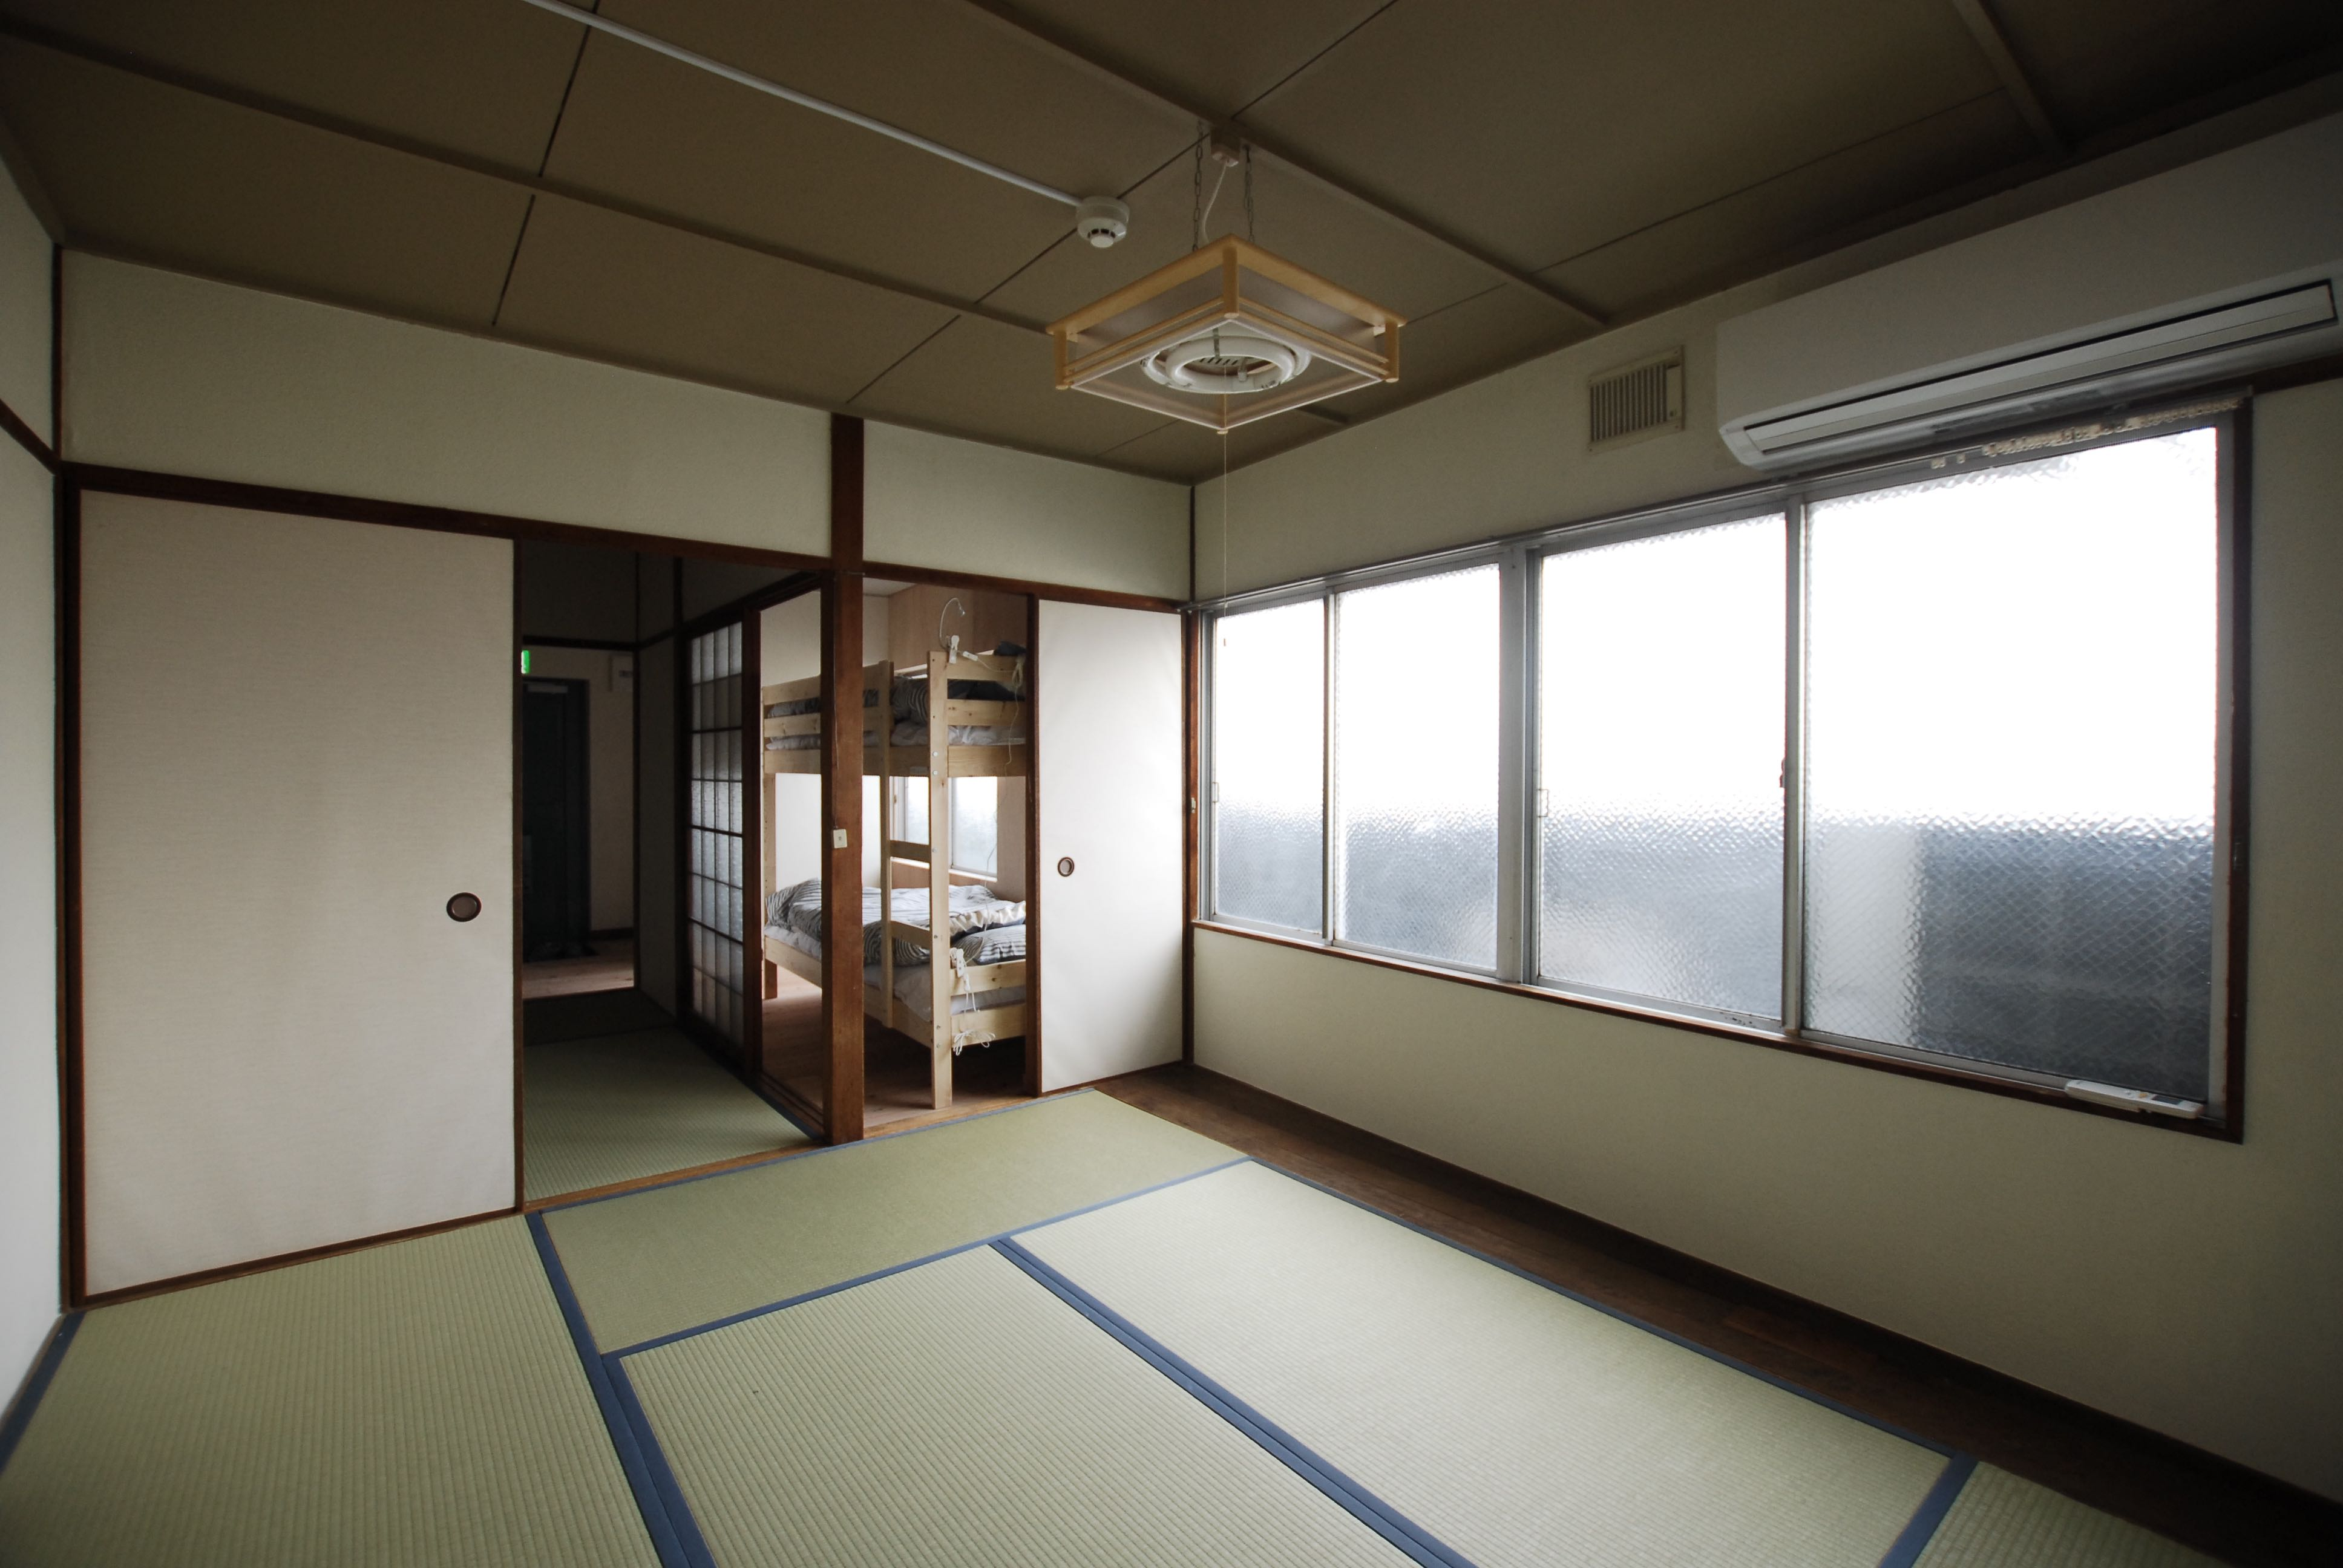 Typical Japanese room called